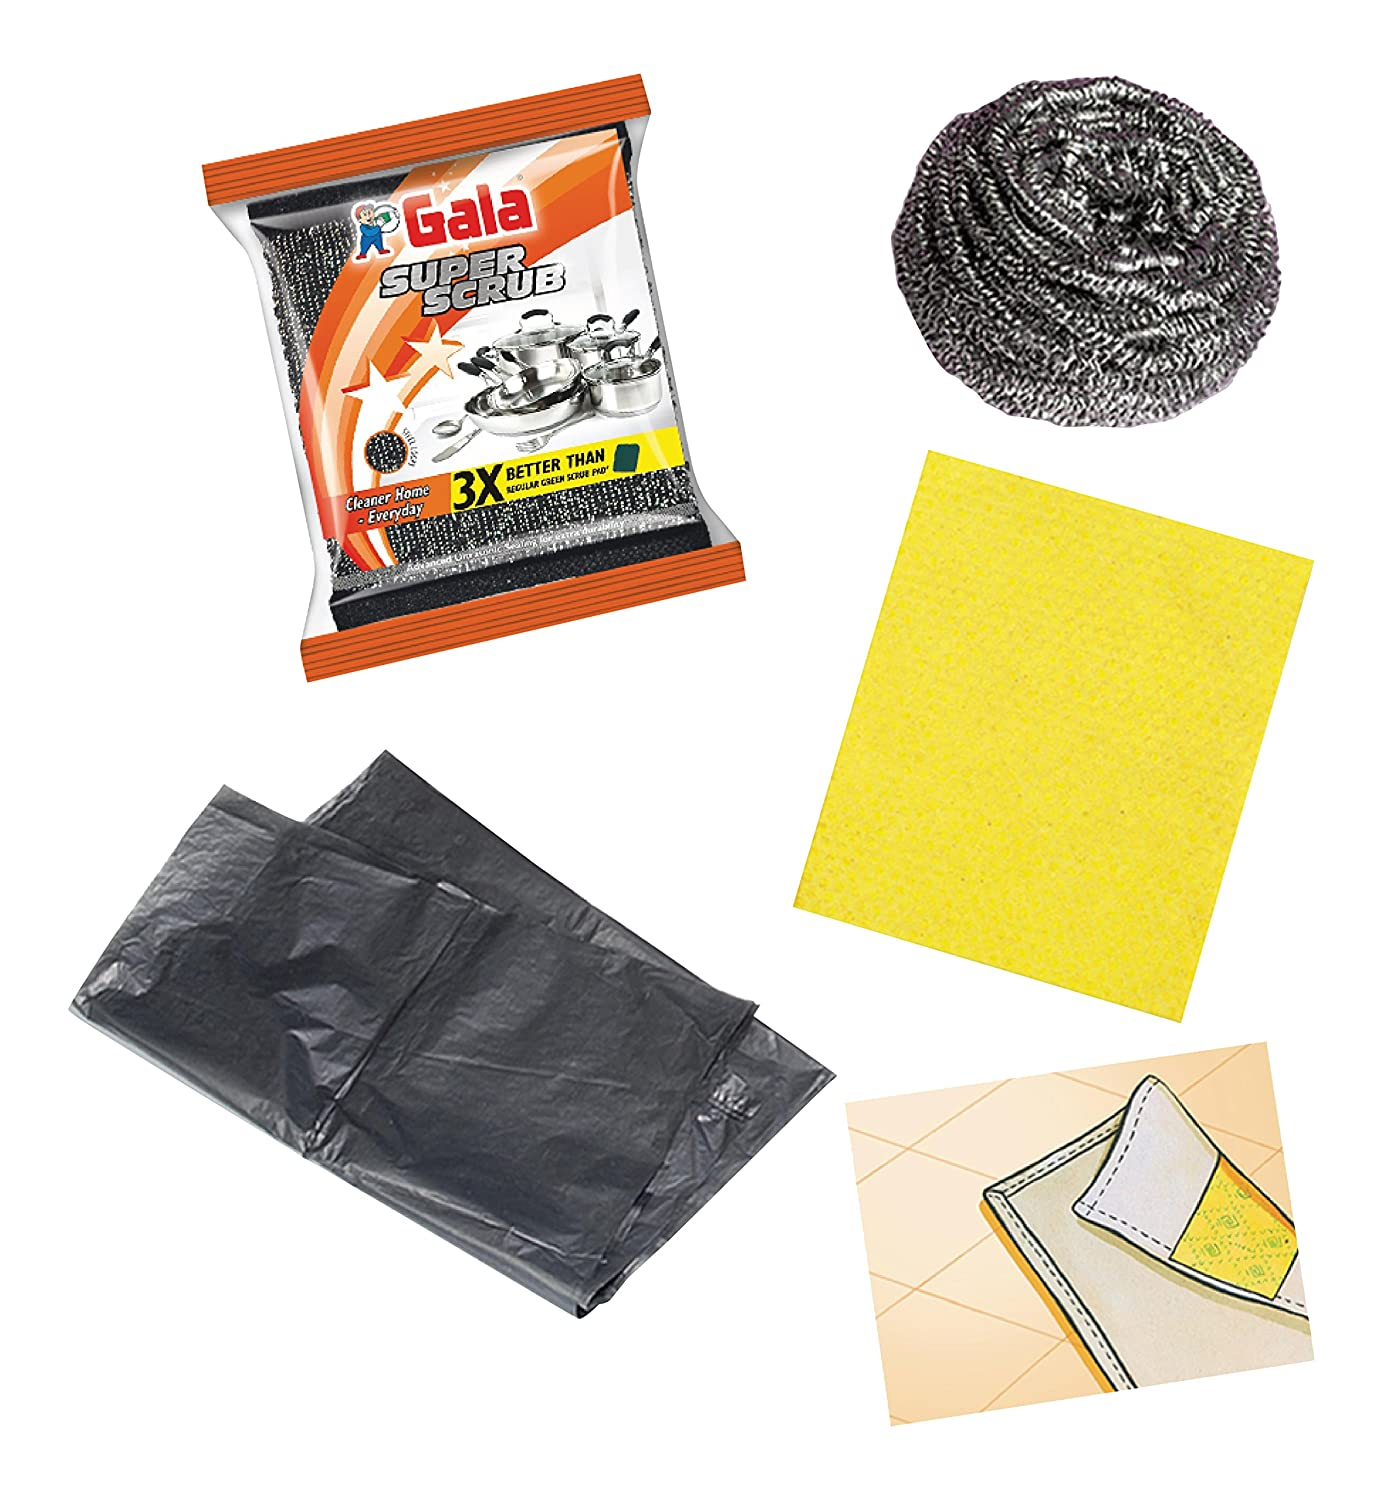 91D4kk87LhL._SL1500_ Gala Monthly Cleaning Essential Combo Rs. 159 – Amazon